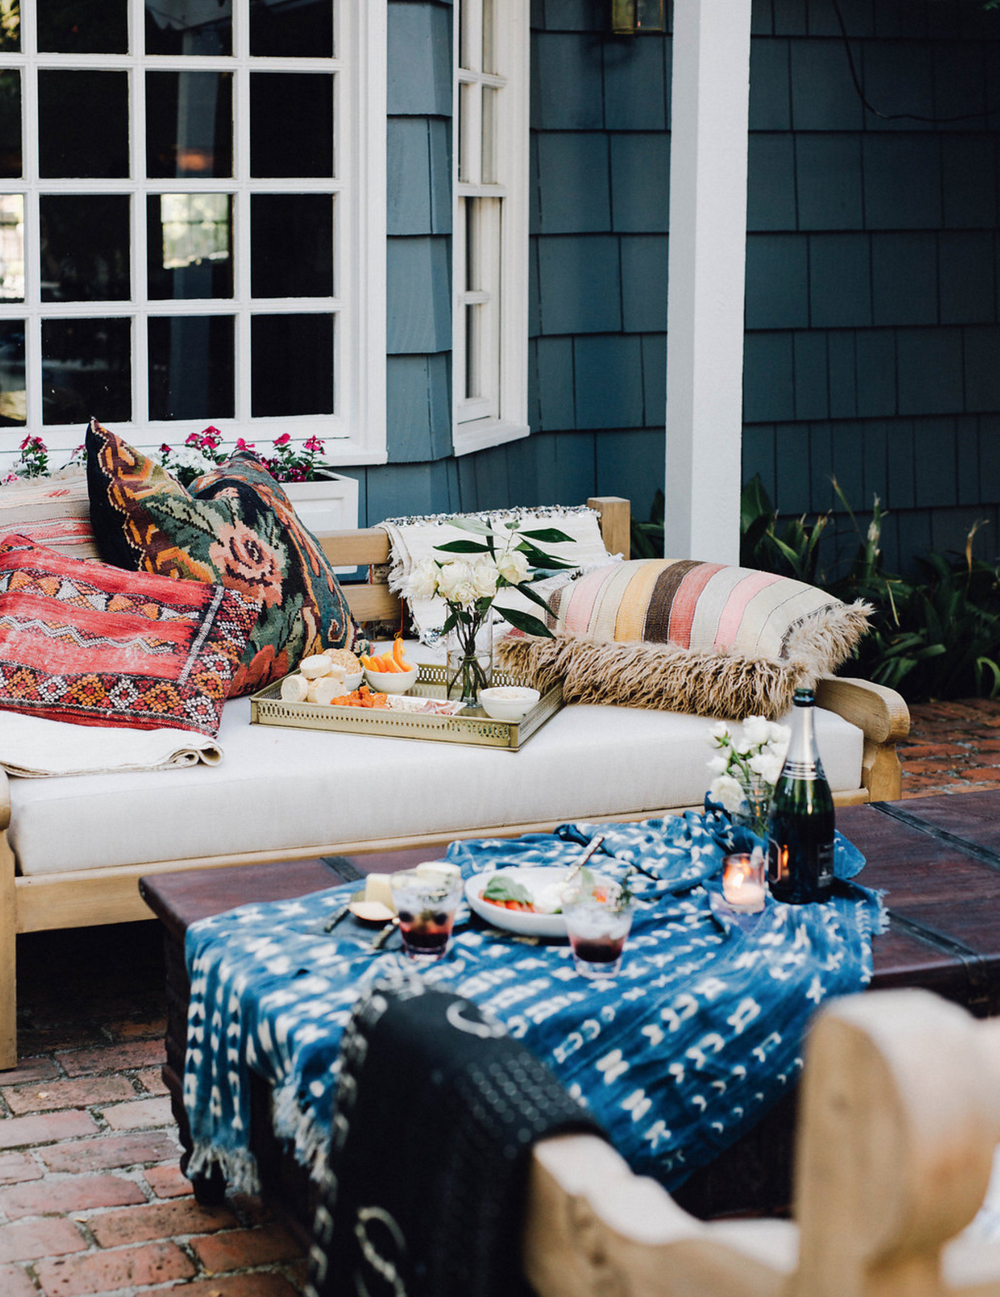 Okay, I realize this isn't a traditional living room. More of an outdoor living room - but I love it anyway!. Image via  Cheetah is the New Black .